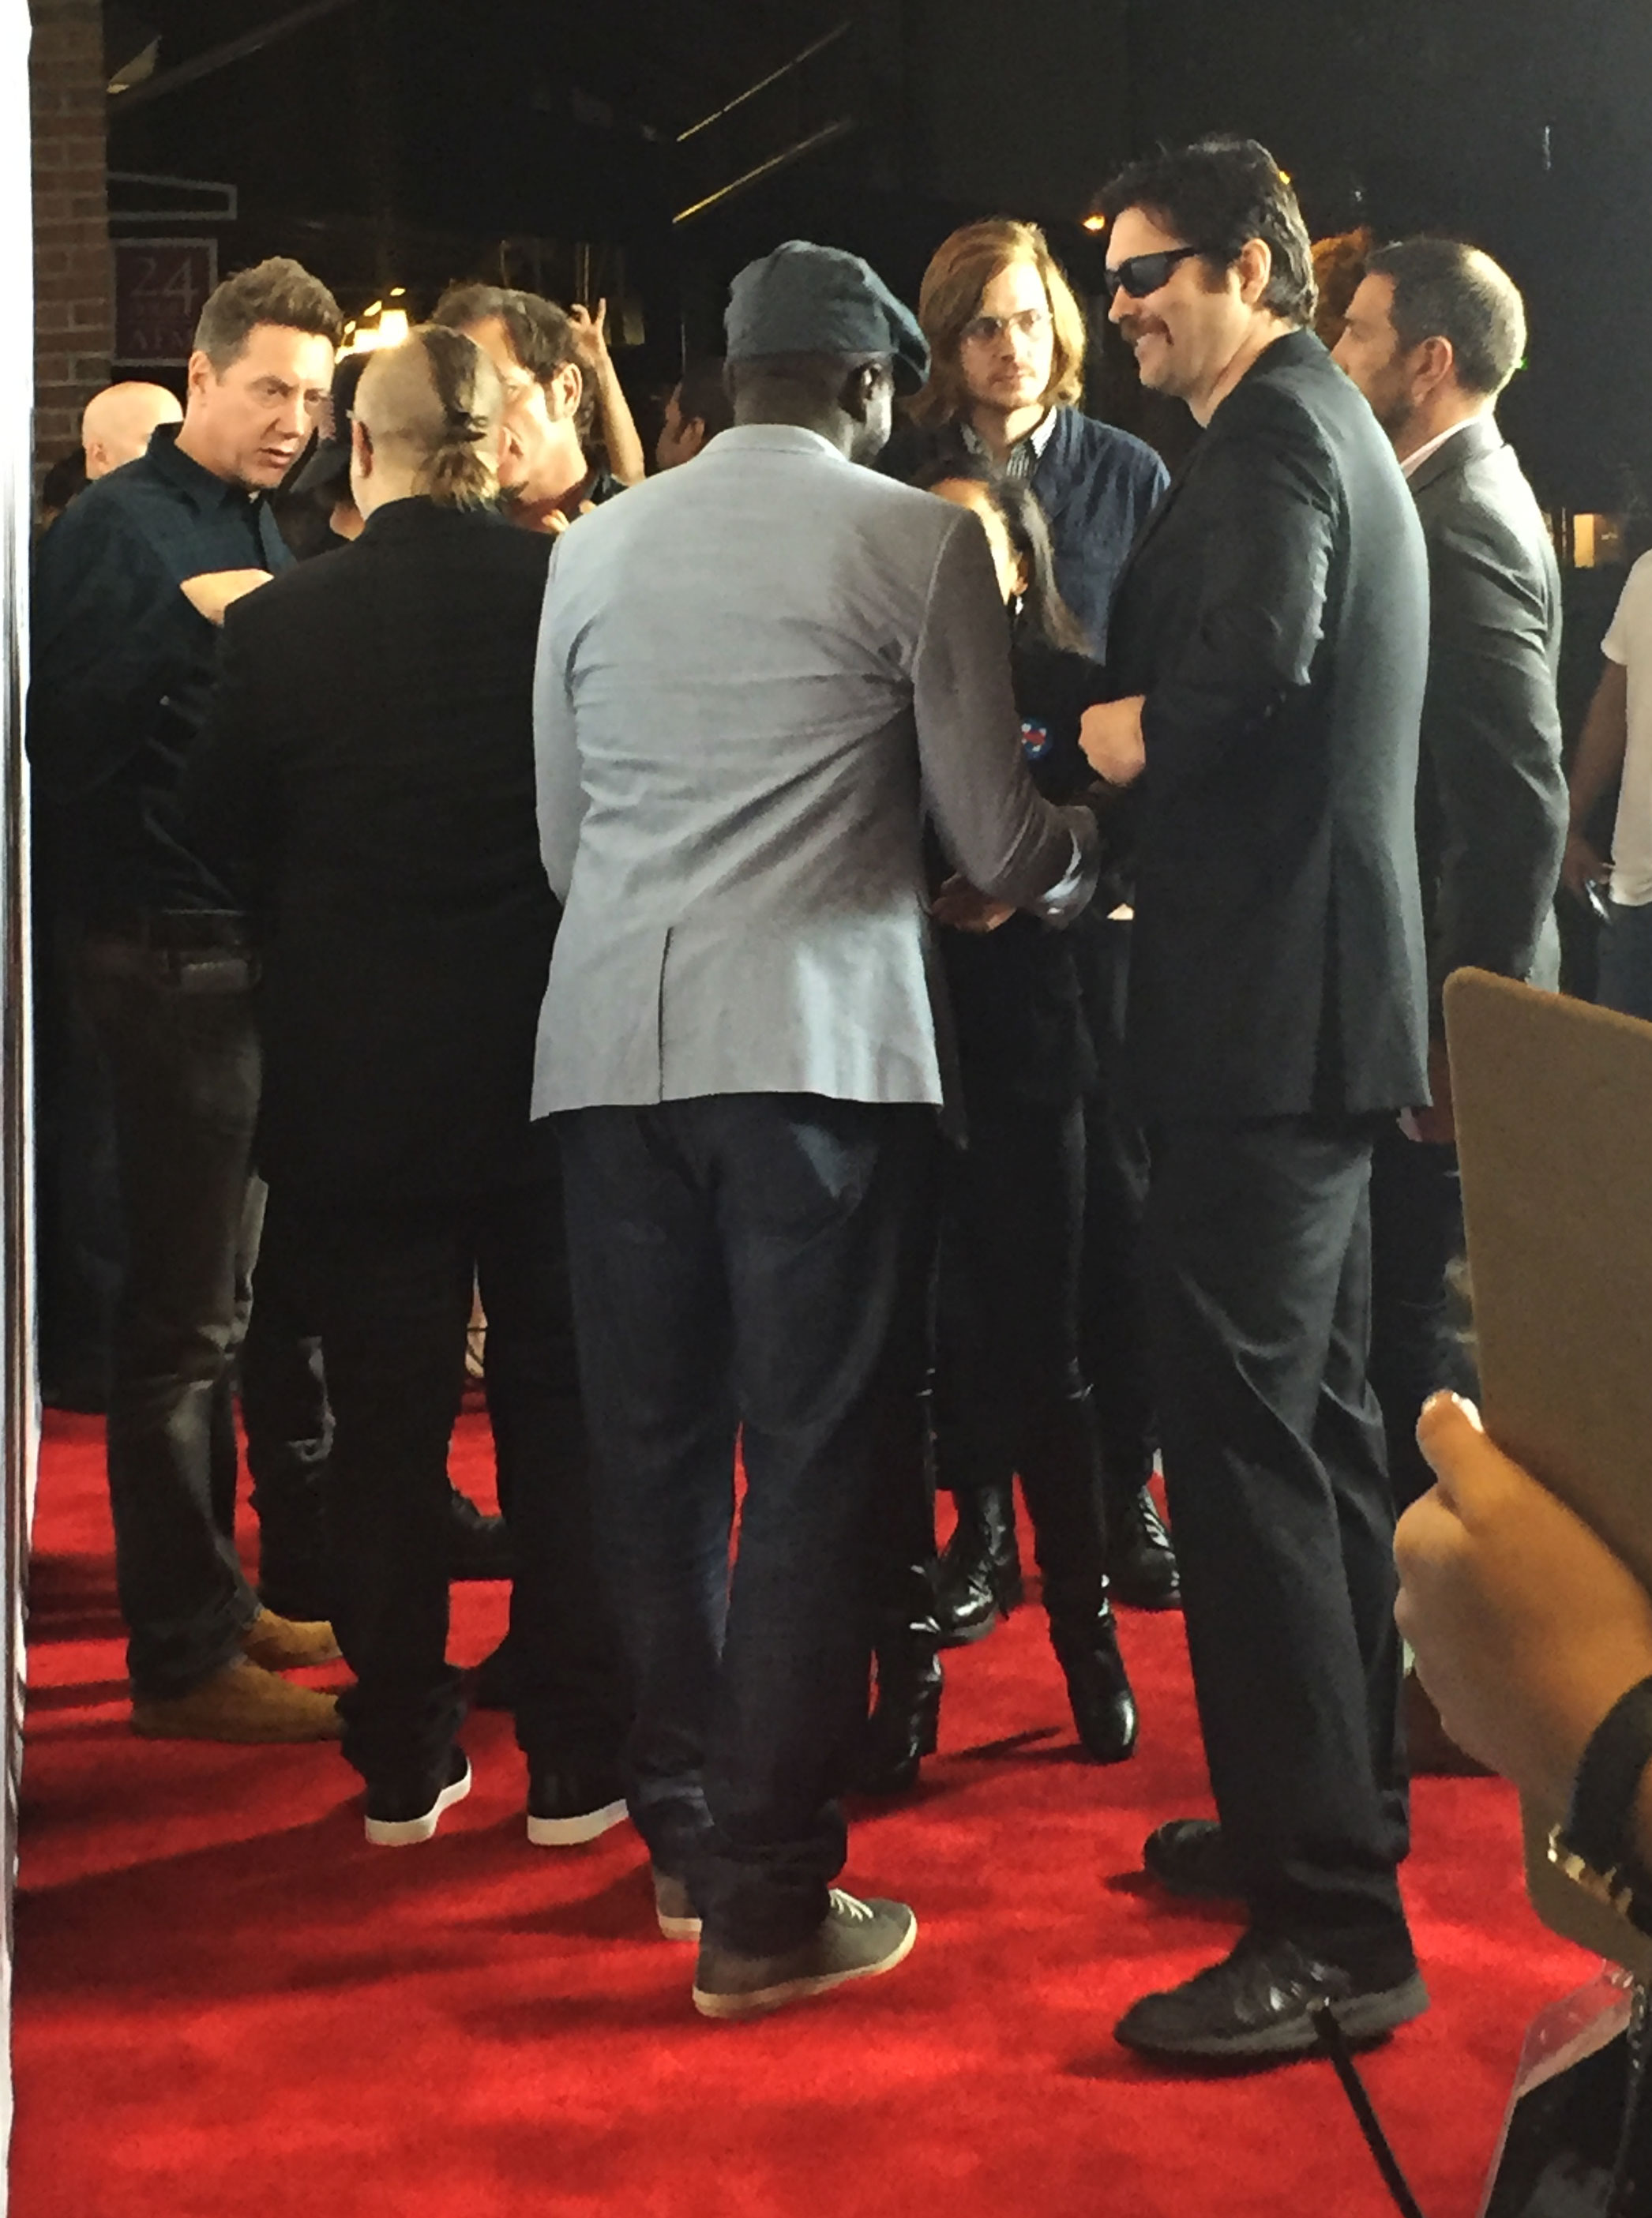 The team had a moment on the red carpet